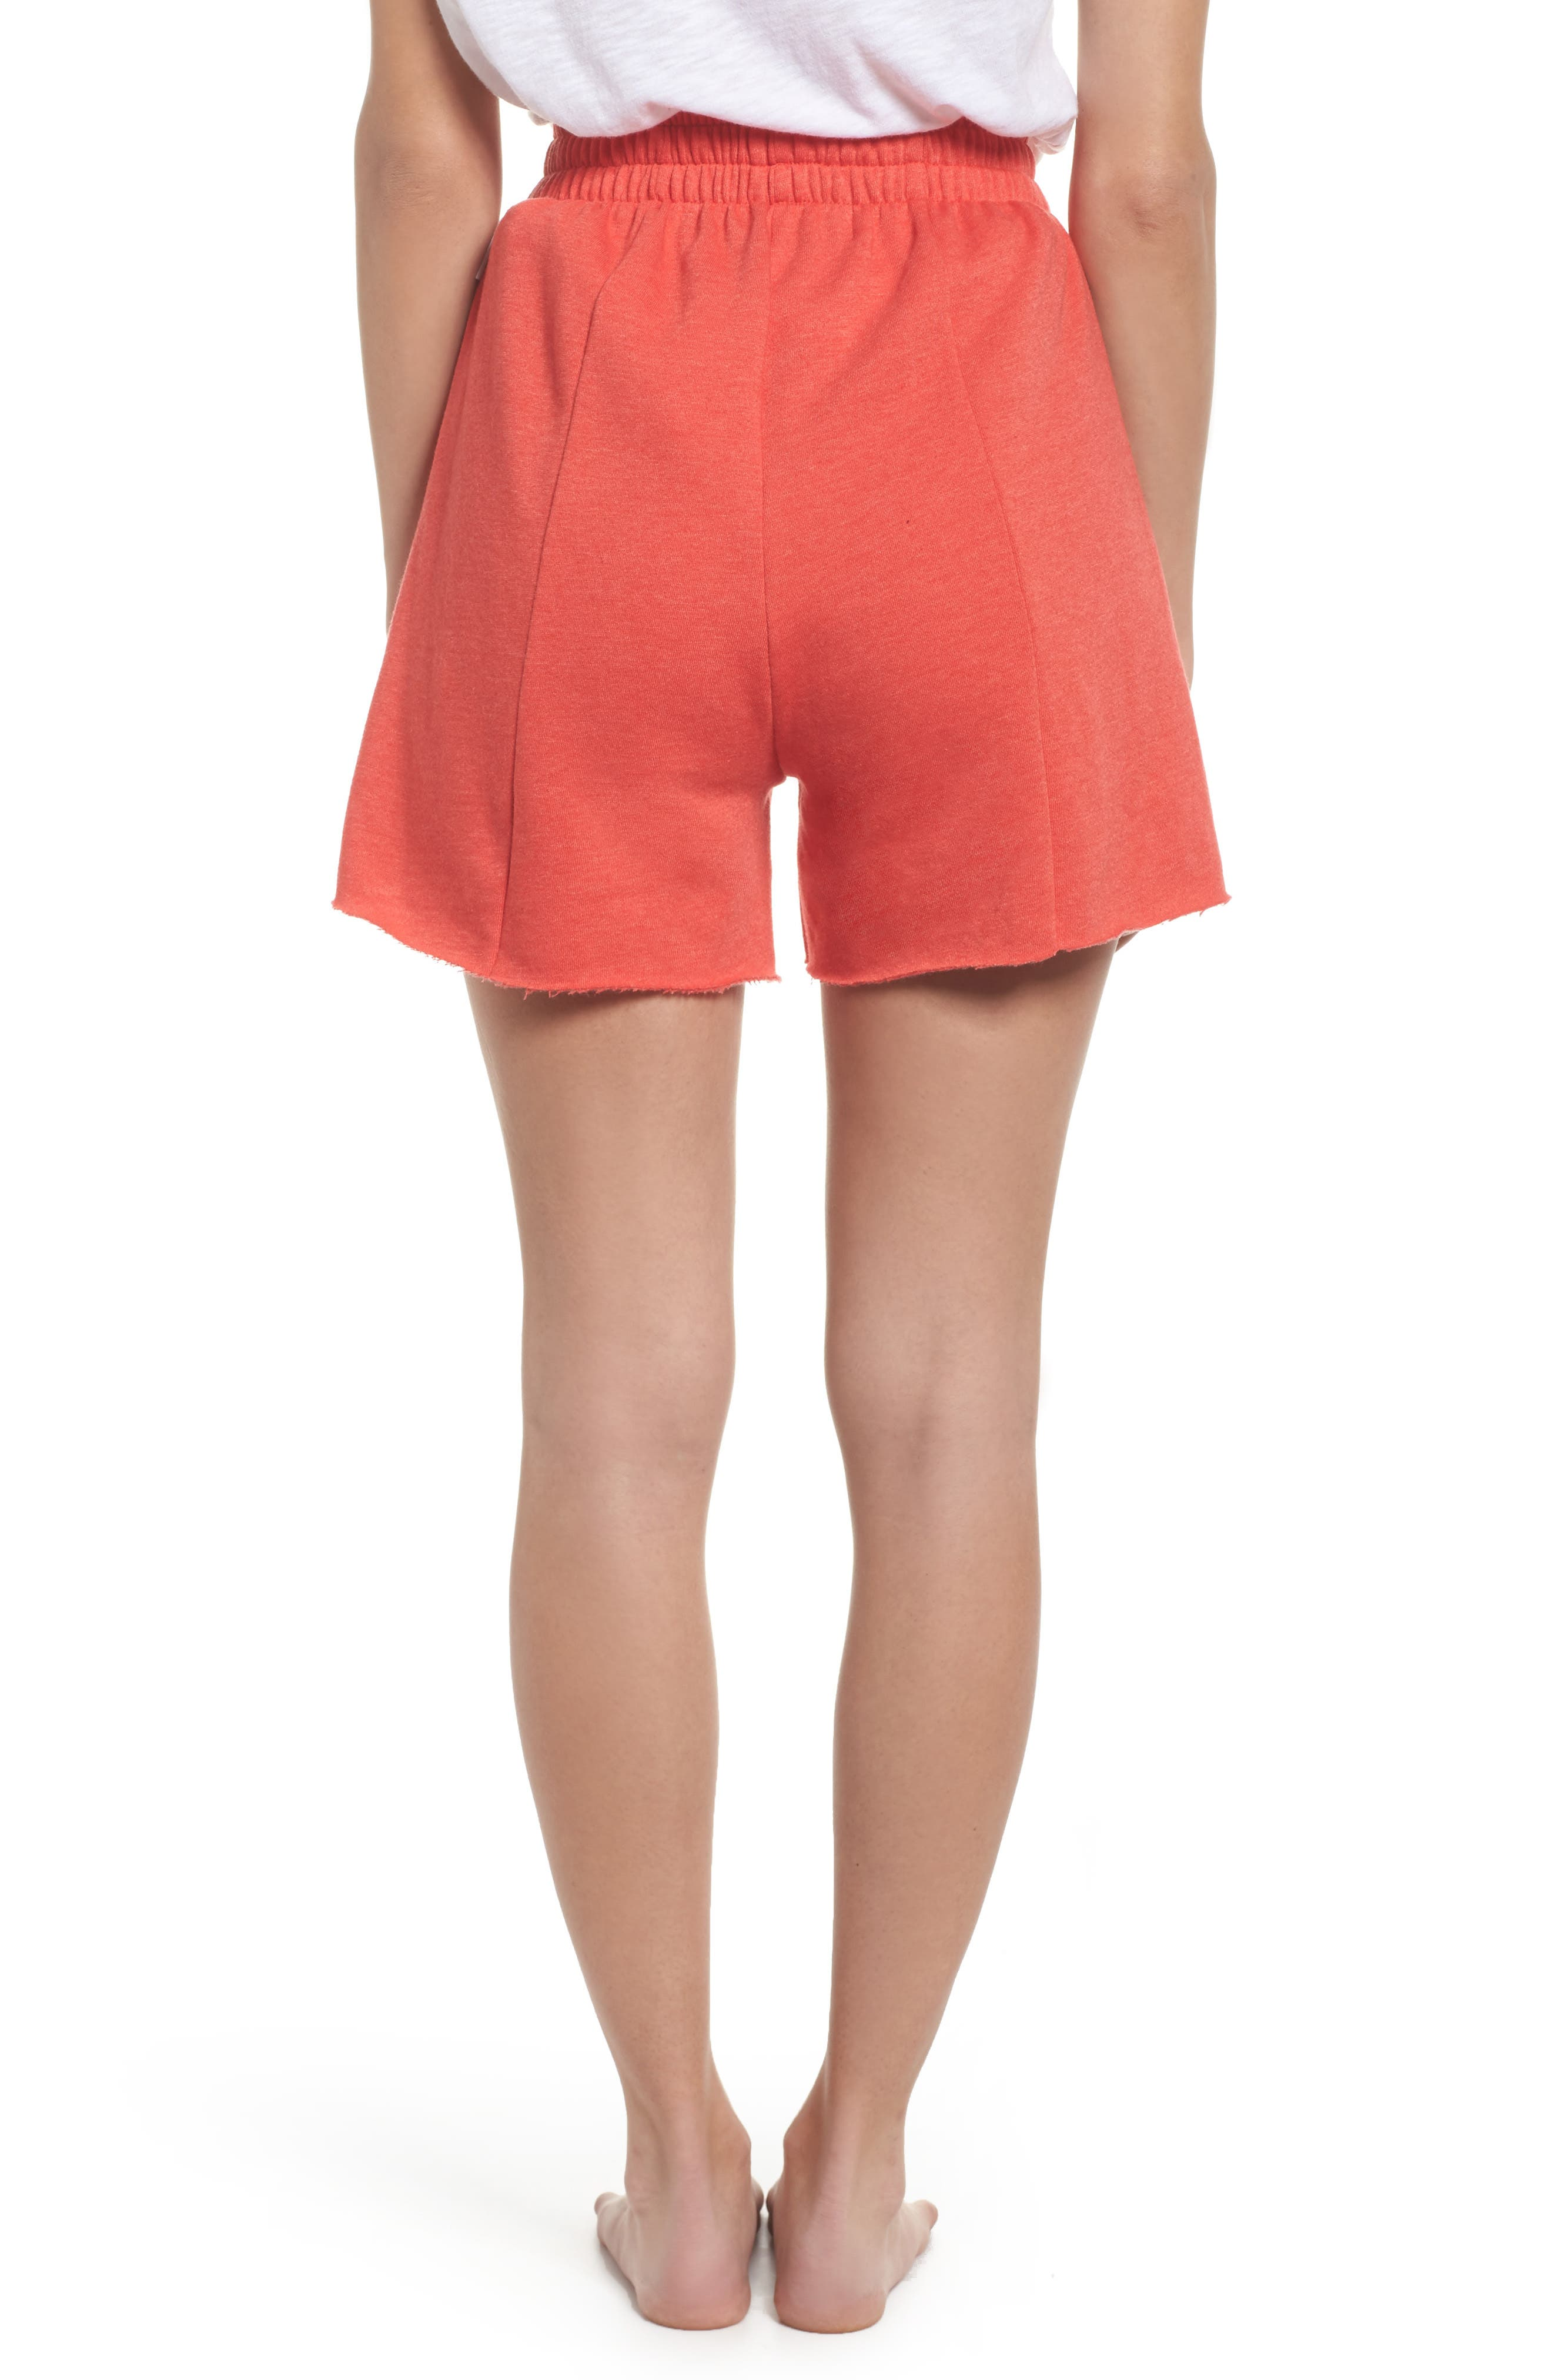 Bermuda Lounge Shorts,                             Alternate thumbnail 2, color,                             Love Red